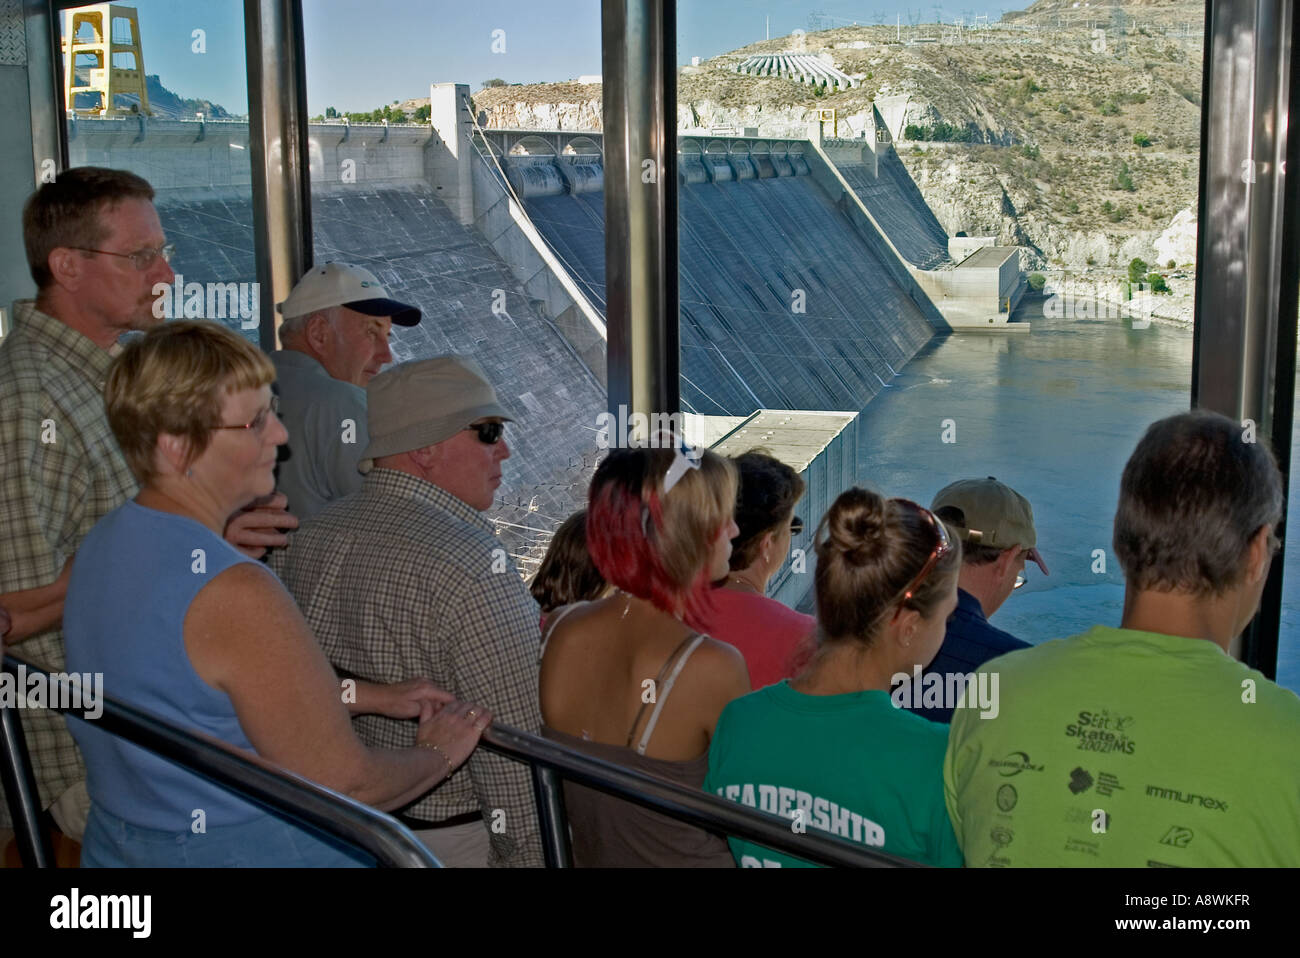 Usa washington grand coulee grand coulee dam face 3rd powerhouse usa washington grand coulee grand coulee dam face 3rd powerhouse tour 45 degree incline elevator 2006 publicscrutiny Choice Image